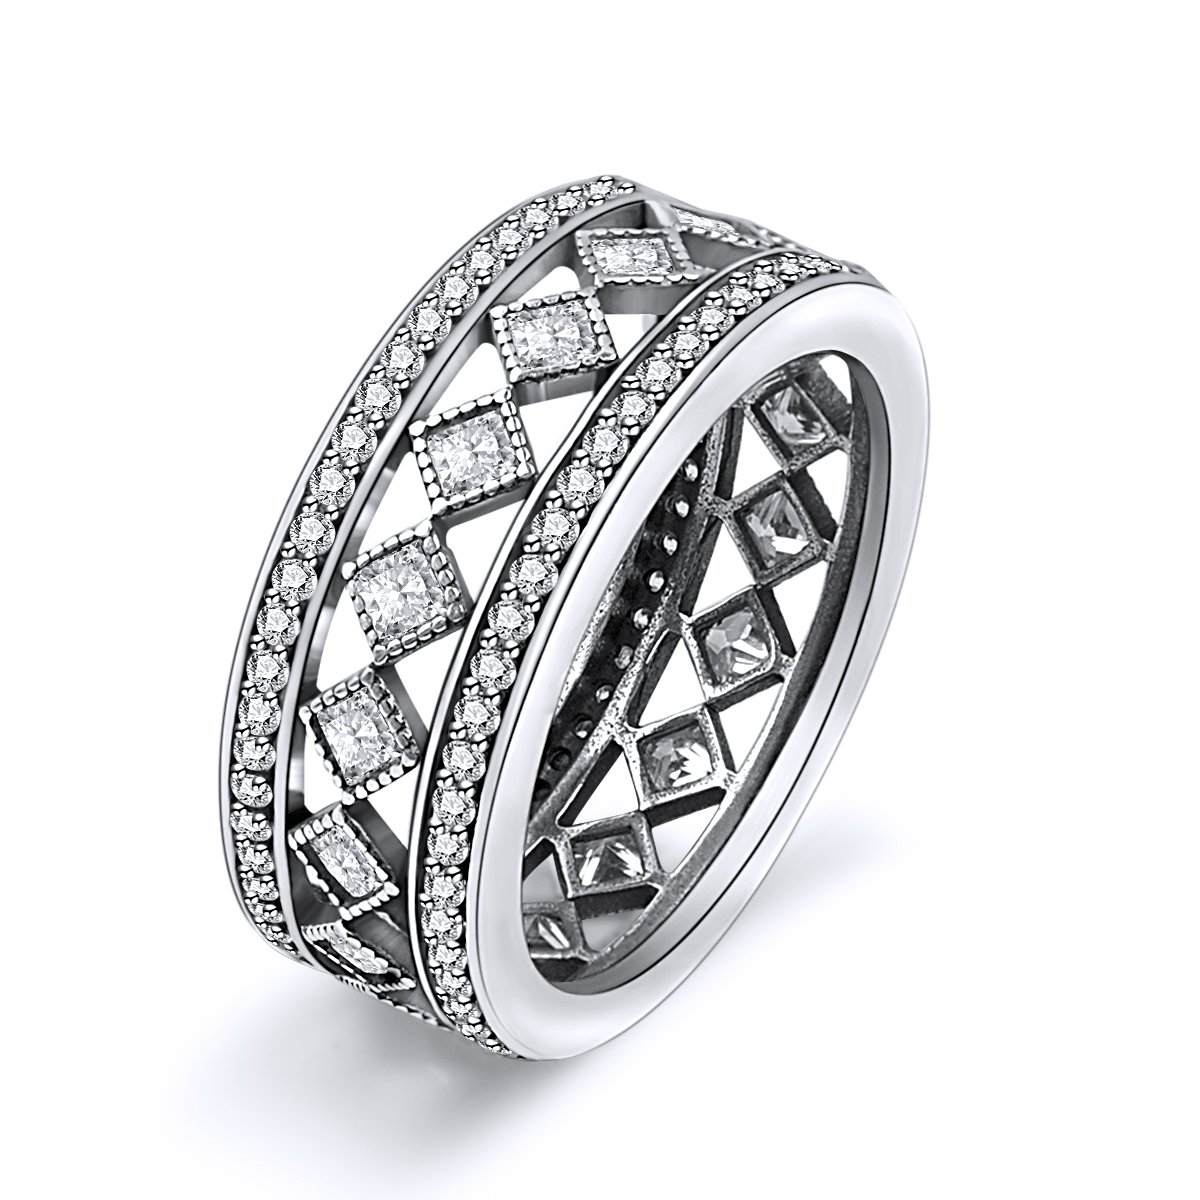 Twenty Plus Vintage Fascination Ring with Clear CZ Gifts for Women & Girls